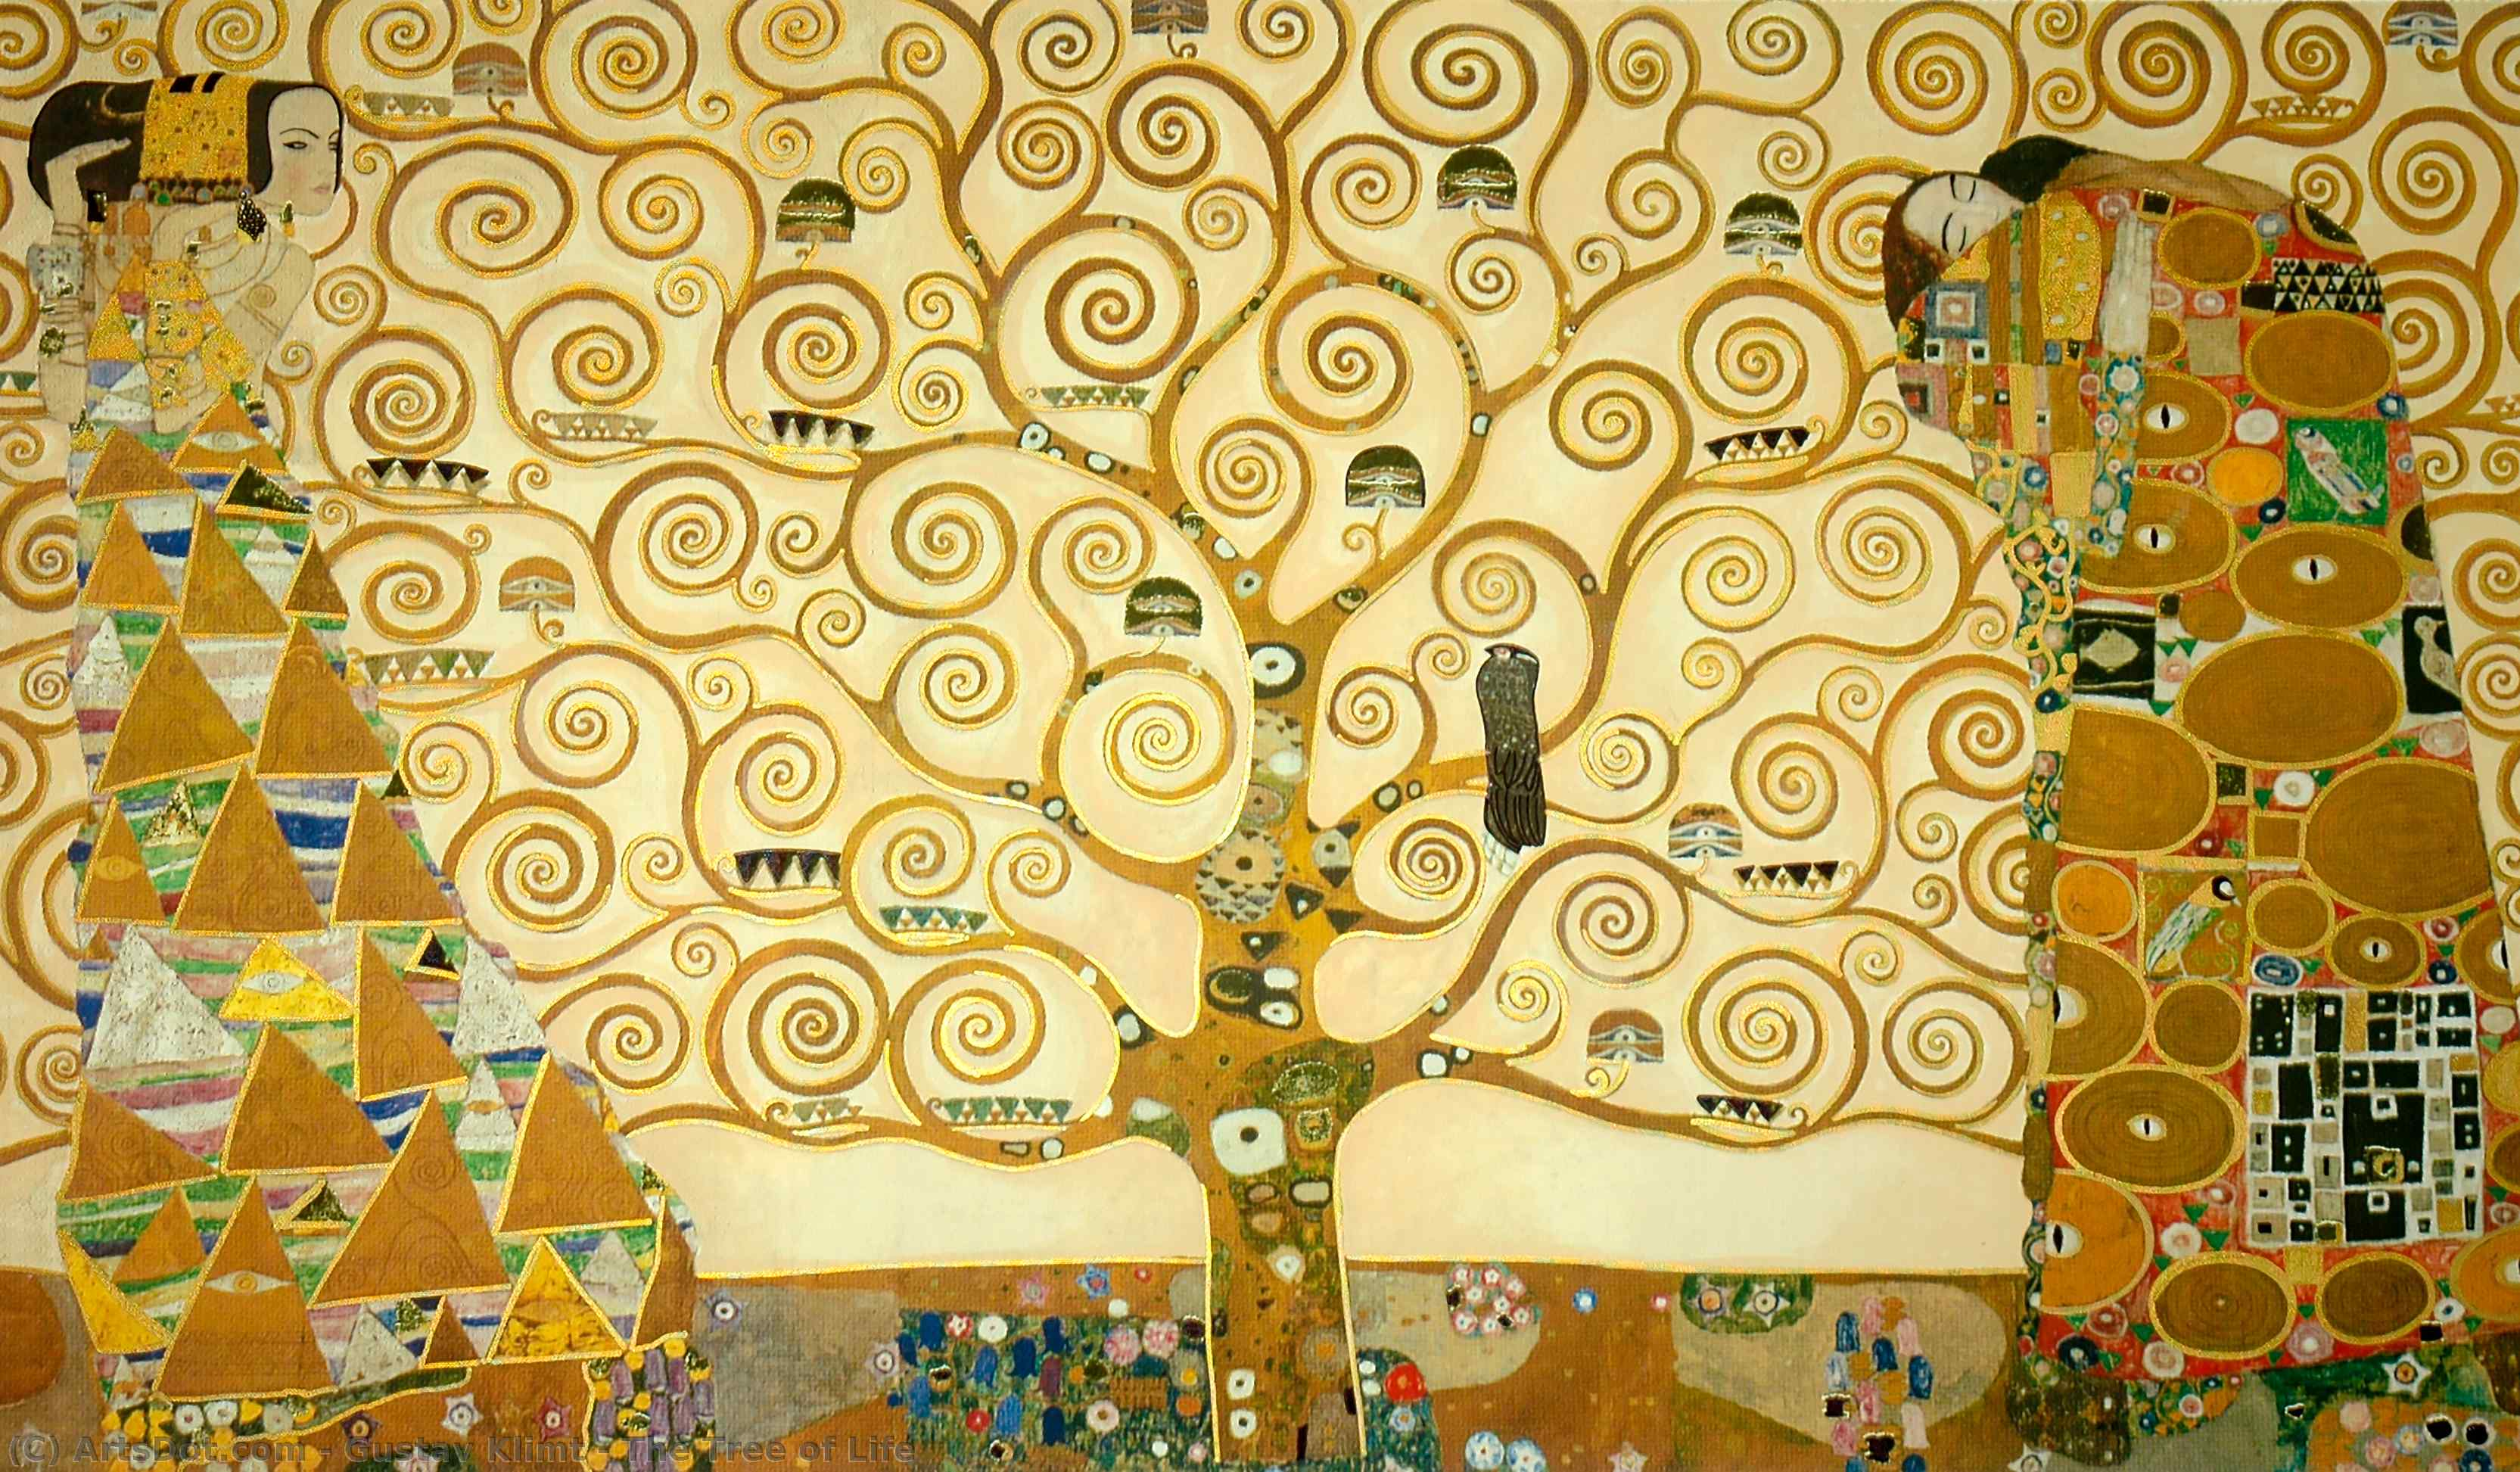 Wikioo.org - The Encyclopedia of Fine Arts - Painting, Artwork by Gustav Klimt - The Tree of Life